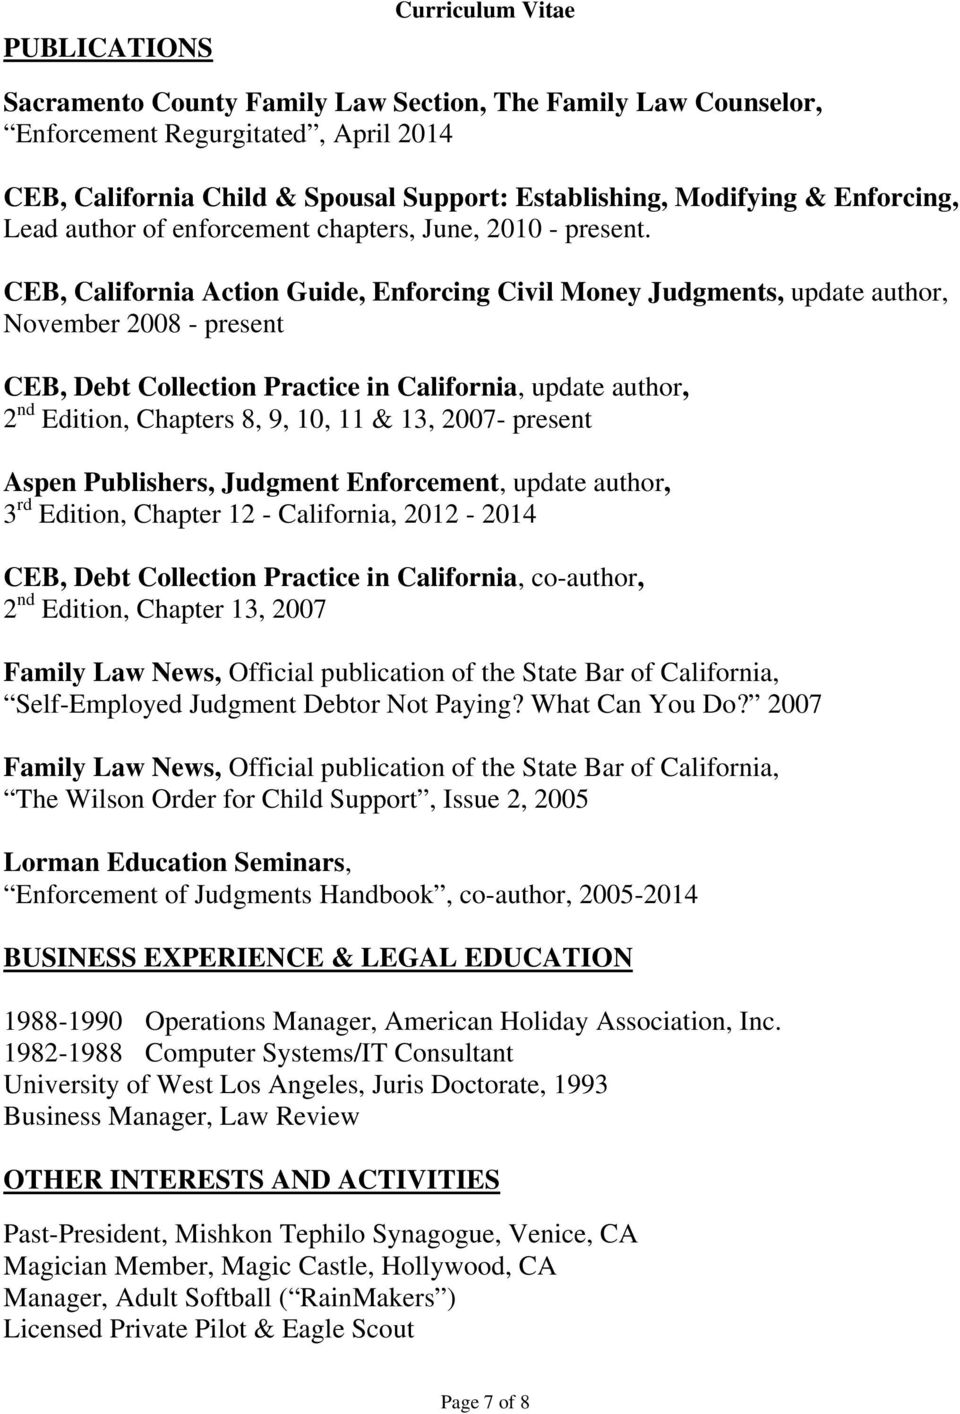 CEB, California Action Guide, Enforcing Civil Money Judgments, update author, November 2008 - present CEB, Debt Collection Practice in California, update author, 2 nd Edition, Chapters 8, 9, 10, 11 &